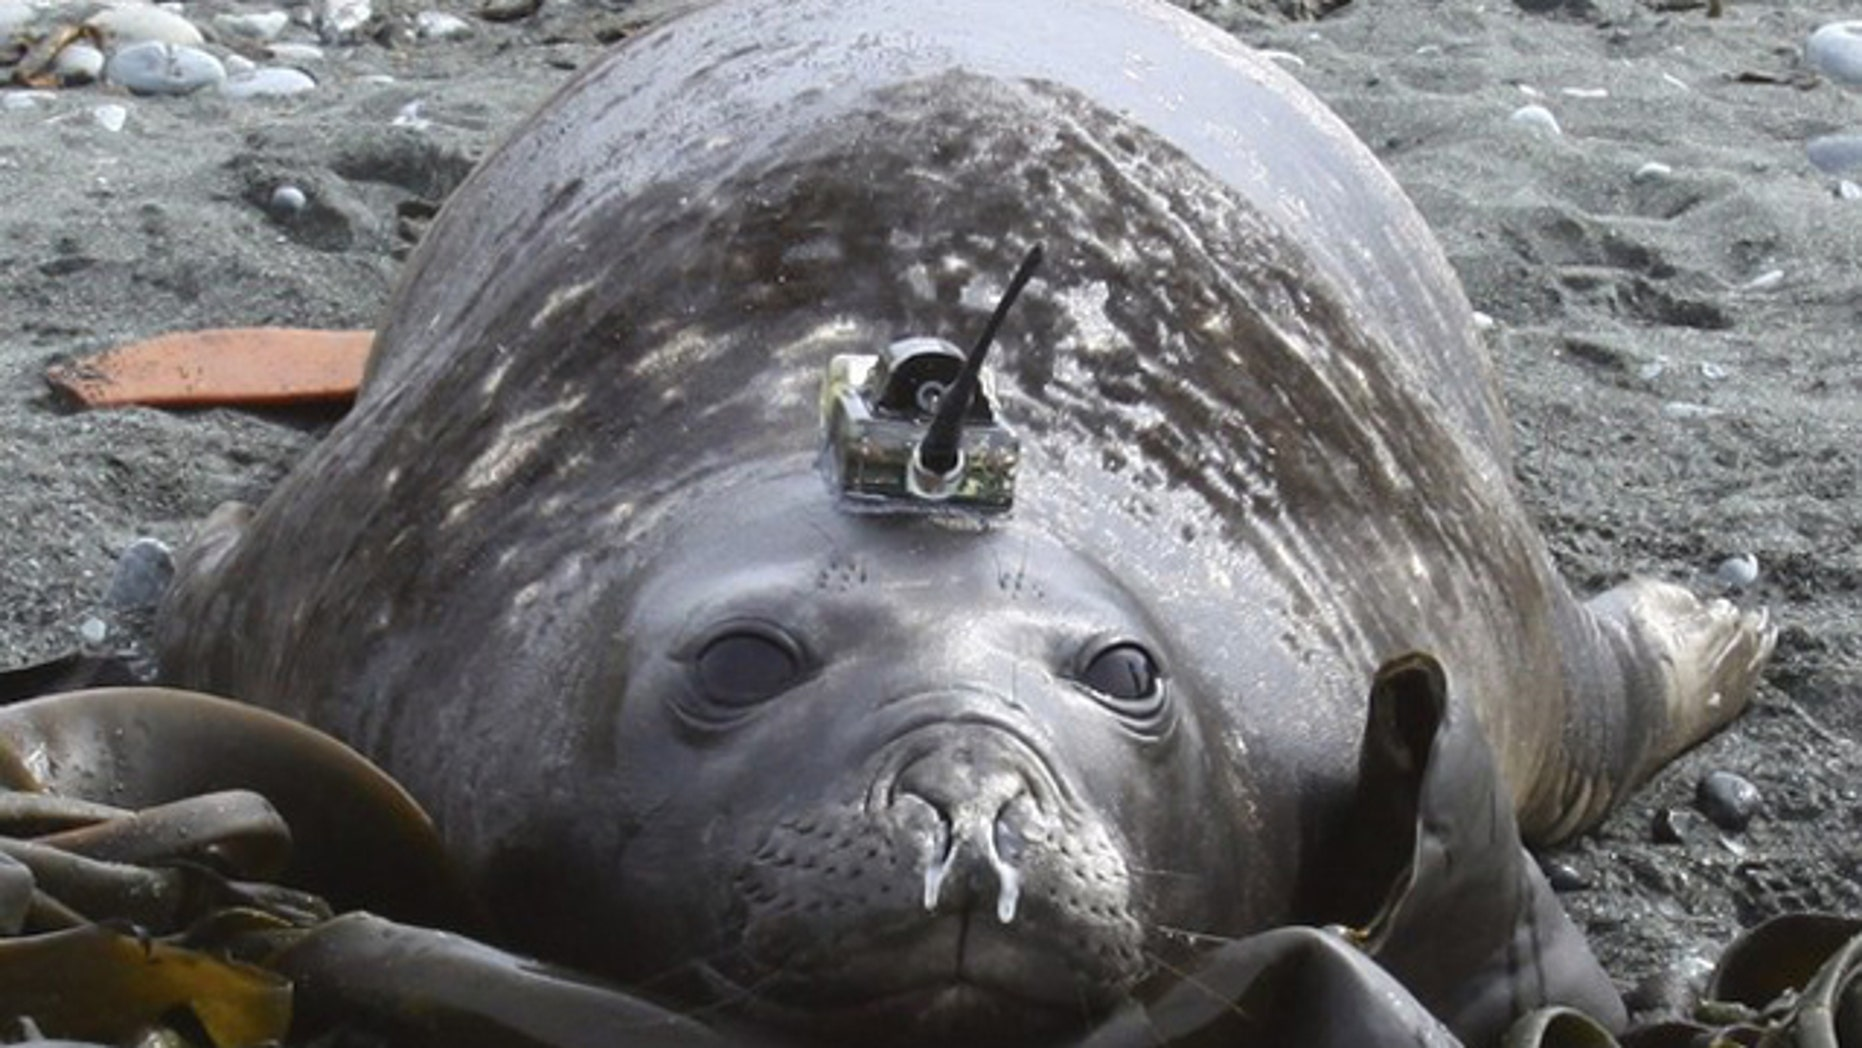 An elephant seal is seen fitted with a sensor device used to monitor where it hunts and eats, and to measure temperature, salinity and pressure of the ocean during deep dives for food in this undated handout photograph taken in an undisclosed location and released October 15, 2010. Scientists are outfitting elephant seals and self-propelled water gliders with monitoring equipment to unlock the oceans' secrets.